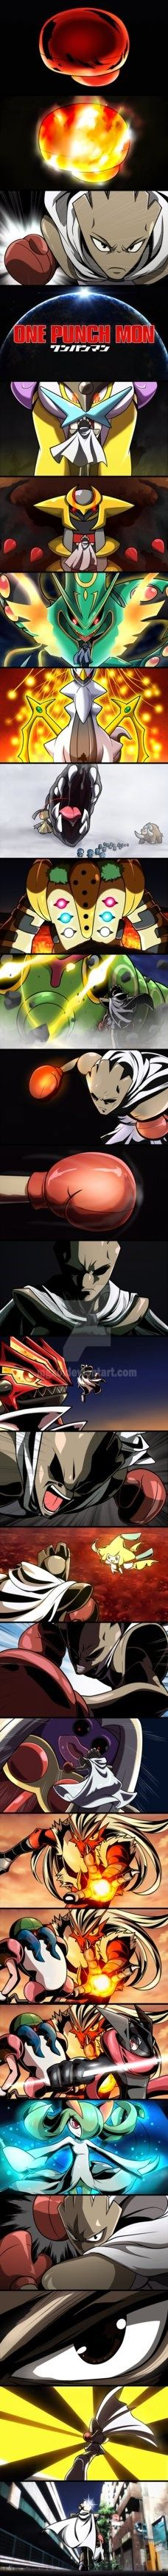 One Punch Mon. *heerrroooo!!